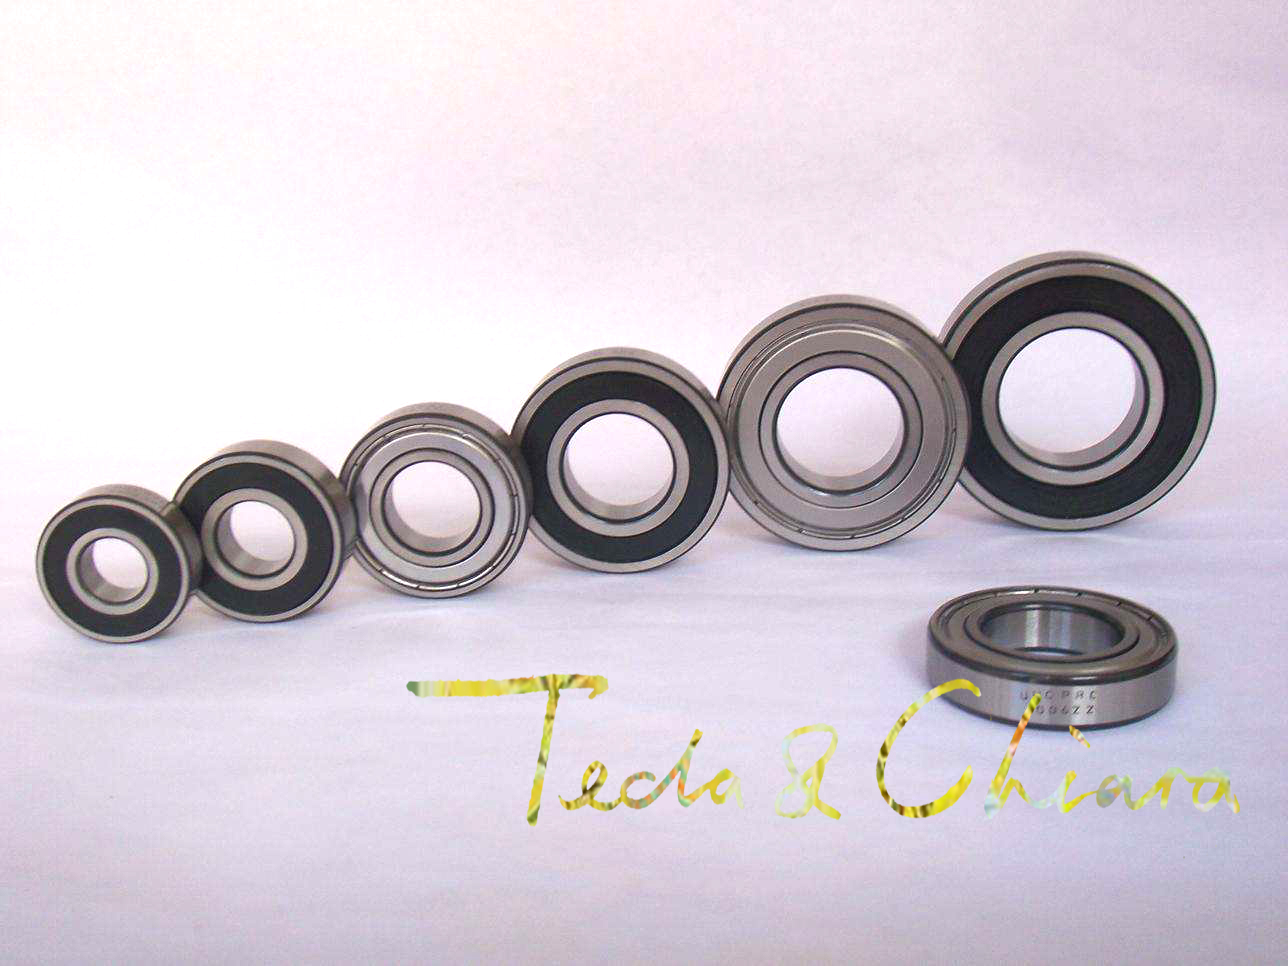 6704 6704ZZ 6704RS 6704-2Z 6704Z 6704-2RS ZZ RS RZ 2RZ Deep Groove Ball Bearings 20 x 27 x 4mm High Quality 6704 6704zz 6704rs 6704 2z 6704z 6704 2rs zz rs rz 2rz deep groove ball bearings 20 x 27 x 4mm high quality